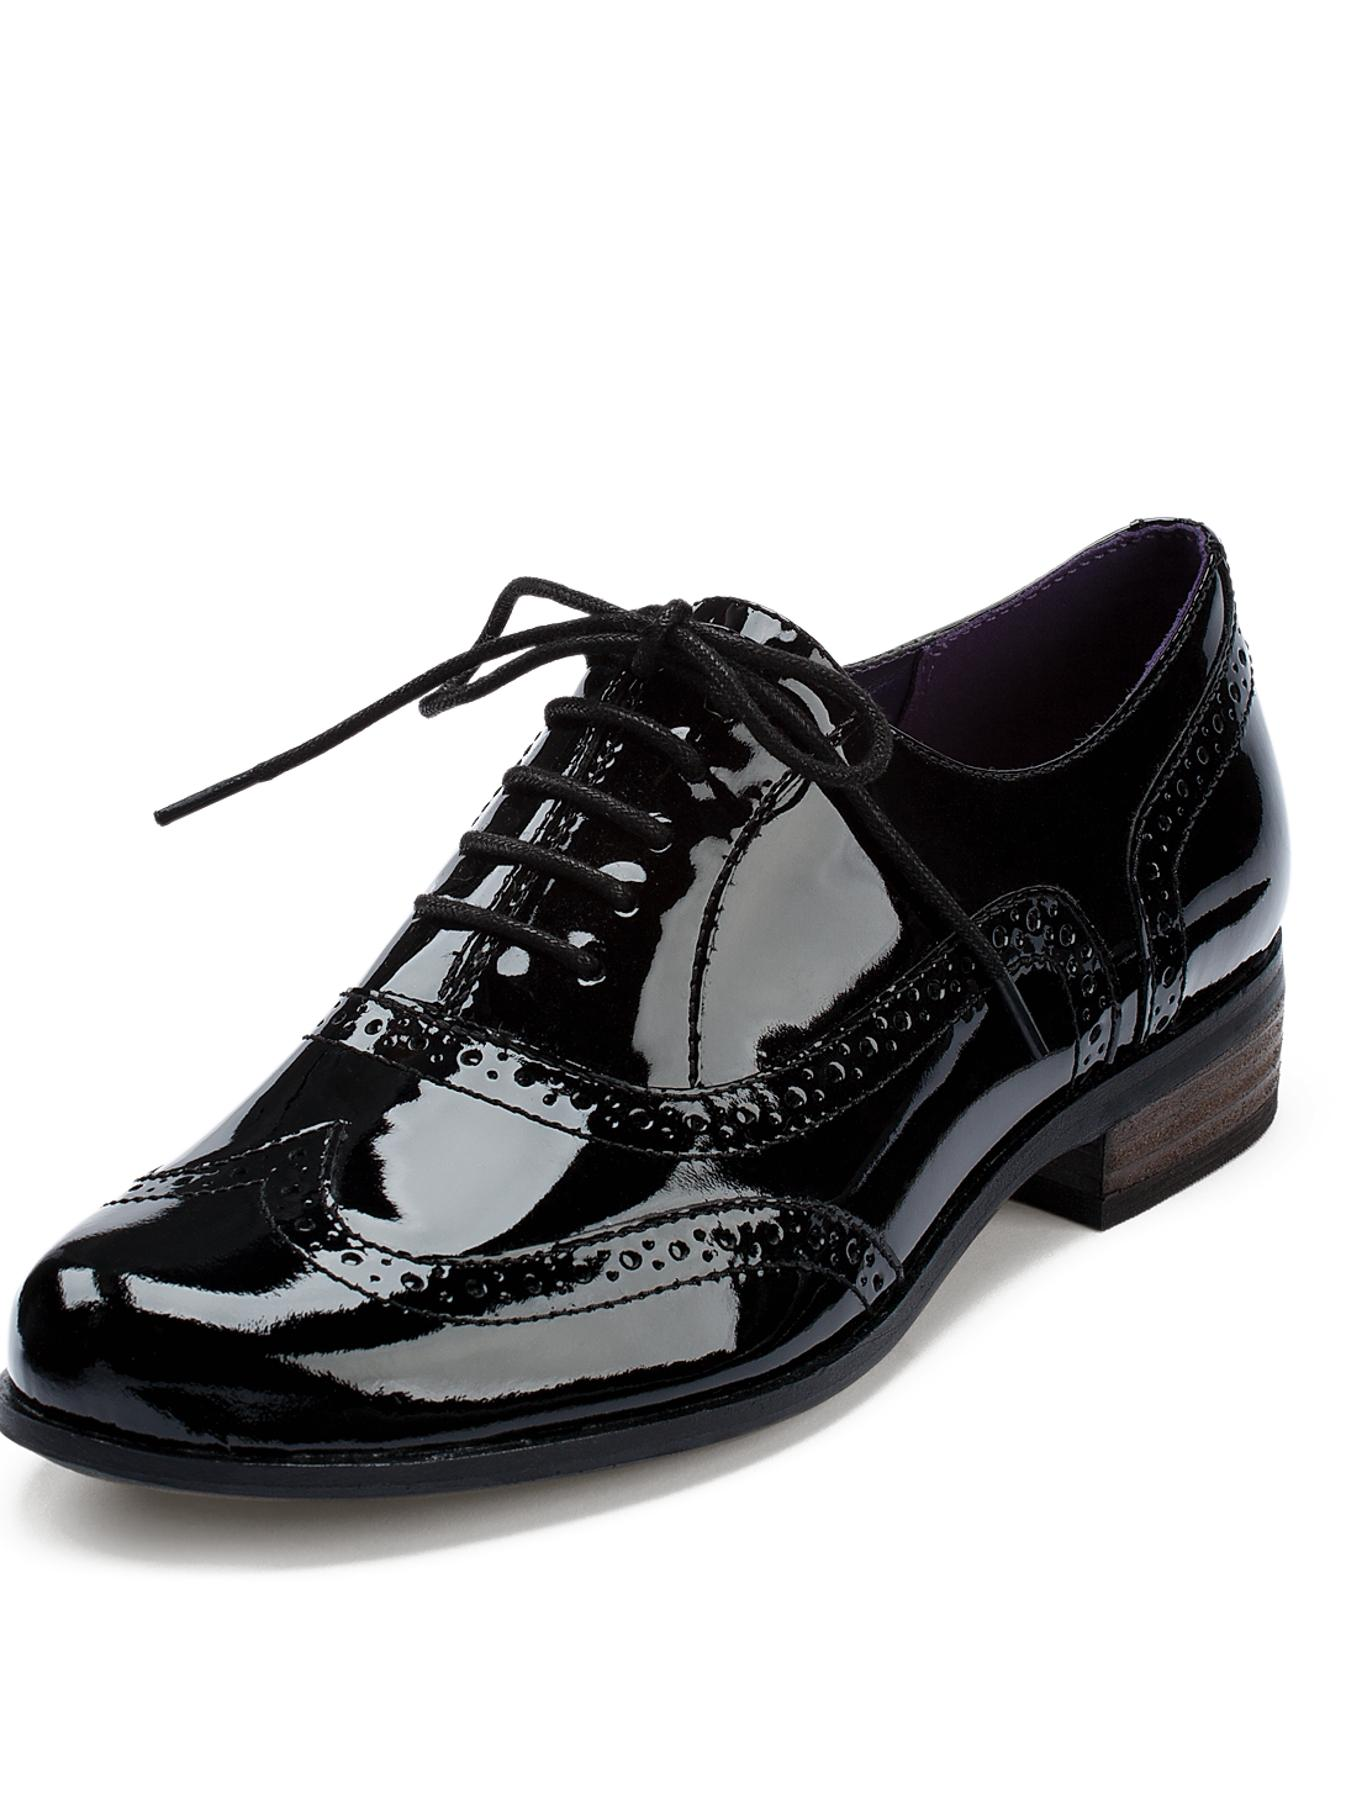 Littlewoods Ladies Black Shoes